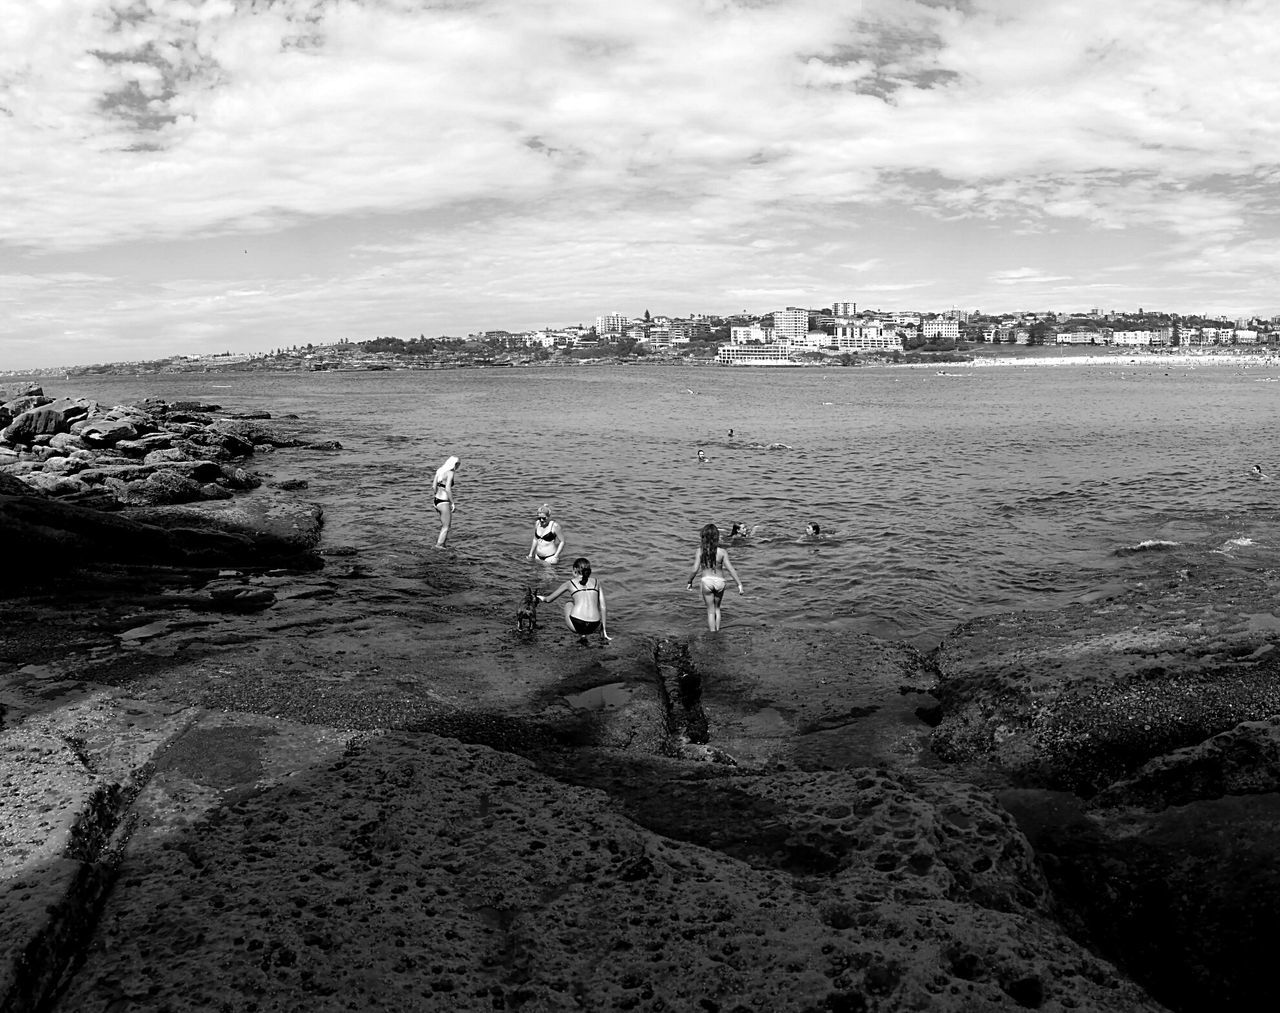 Swim on the rocks Sydney, Australia Bondi Beach Ben Buckler The Rocks North Bondi People Water